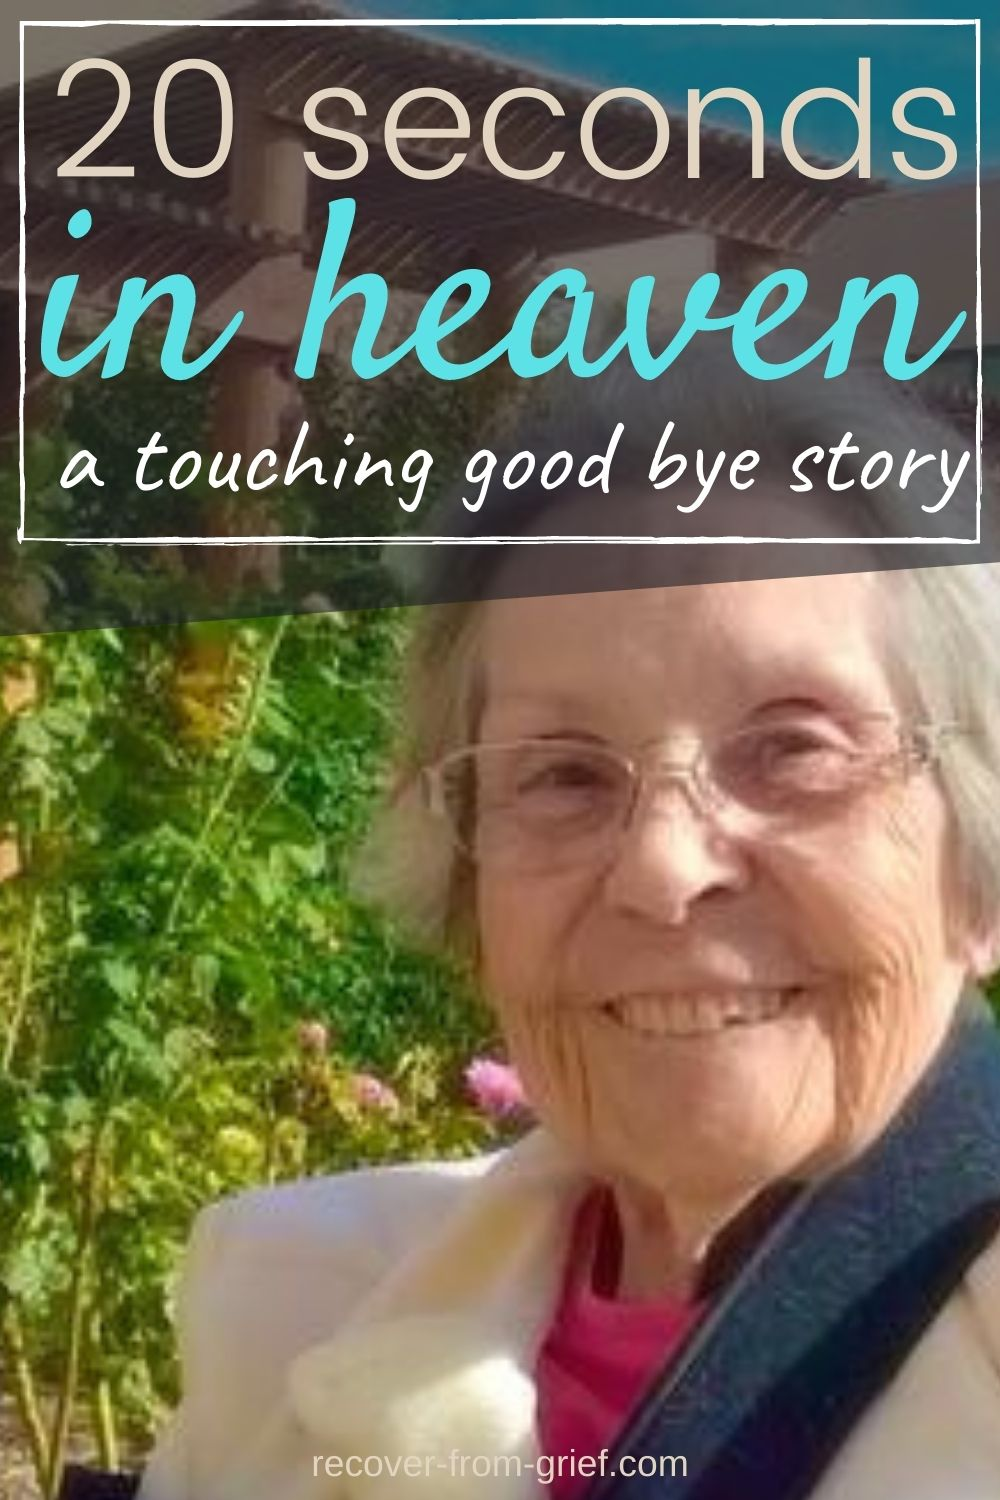 20 seconds in heaven - a touching goodbye story - Pinterest image